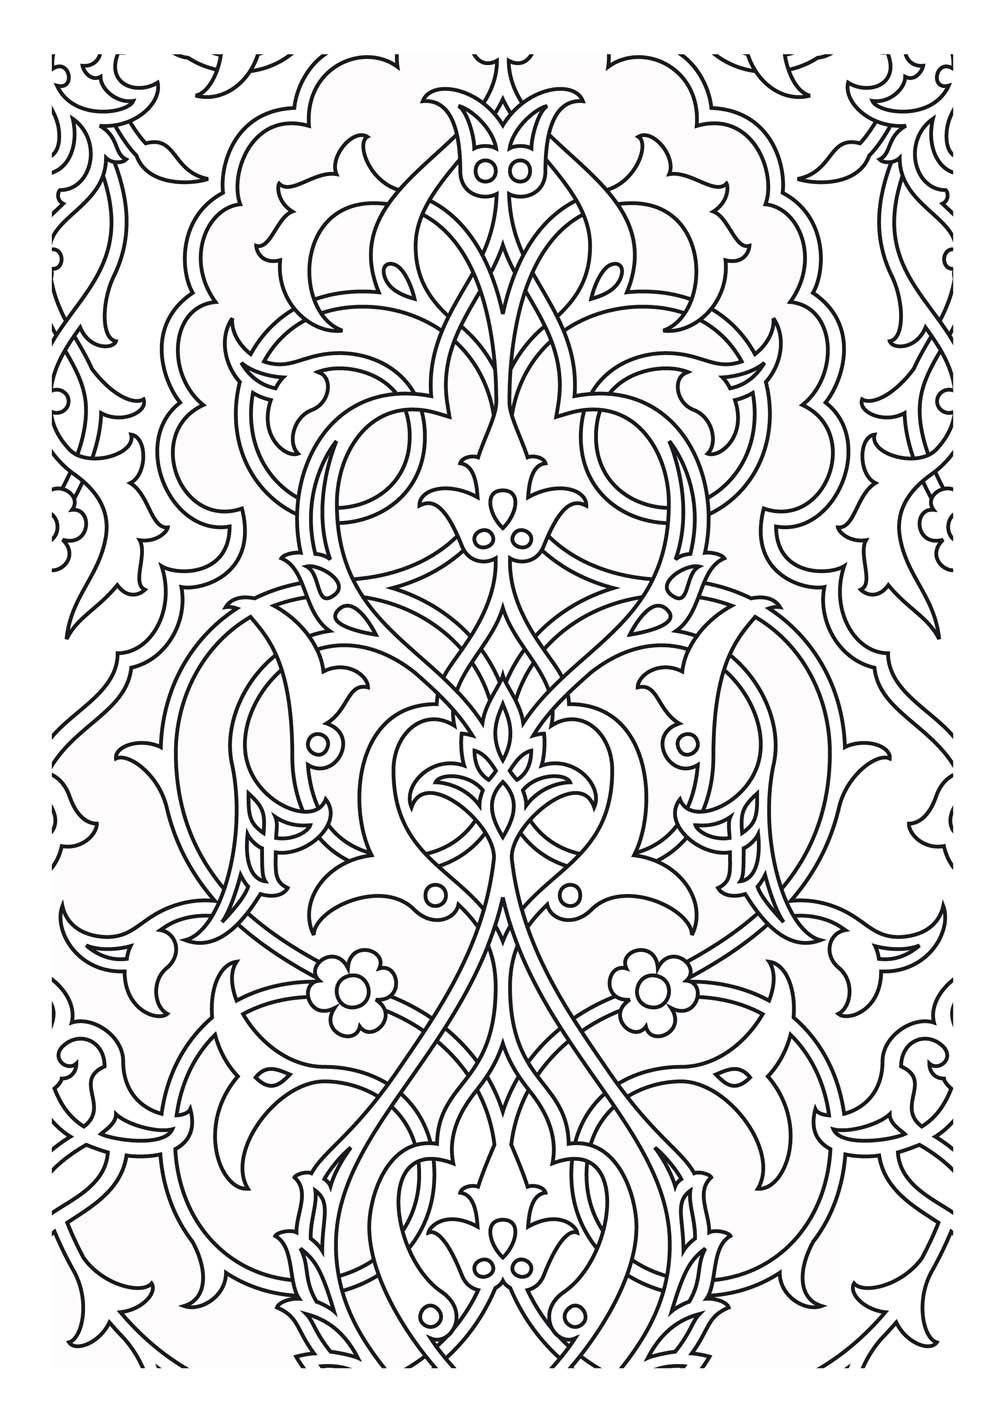 print - Coloring In Patterns